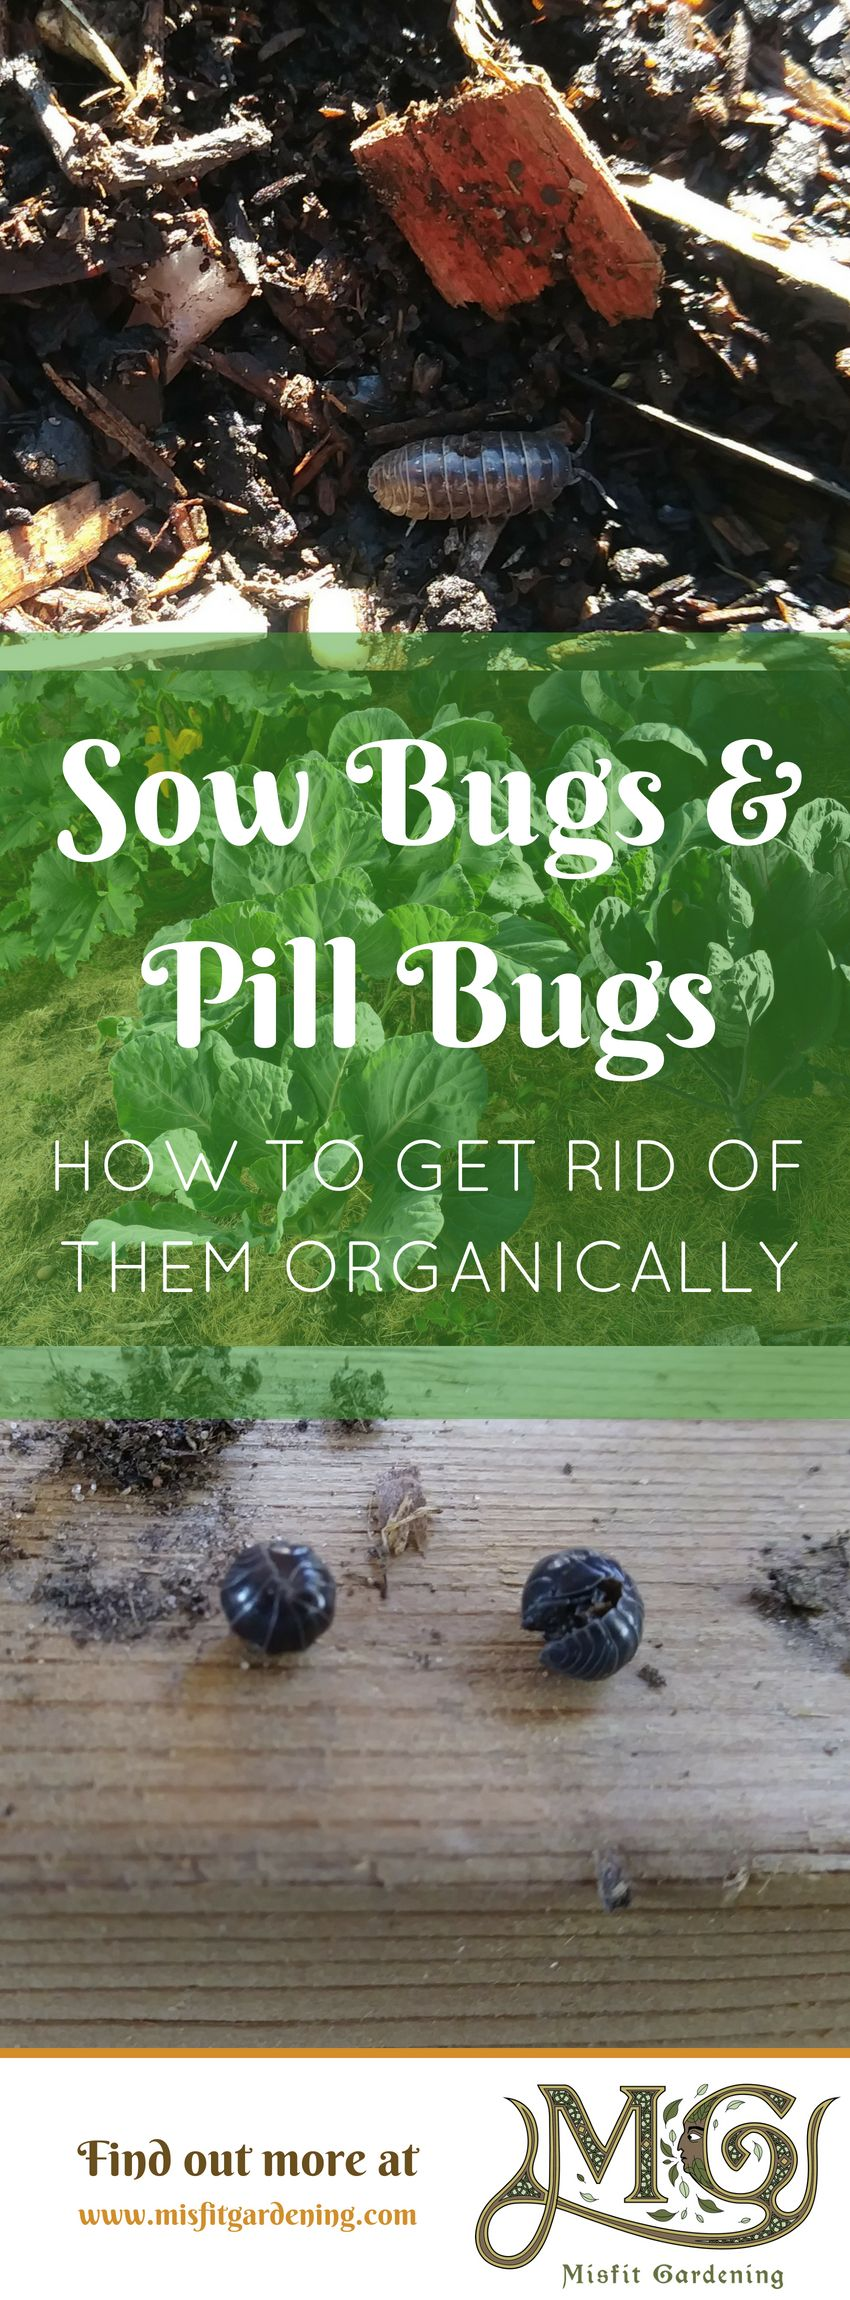 How do you get rid of sow bugs misfit gardening pill